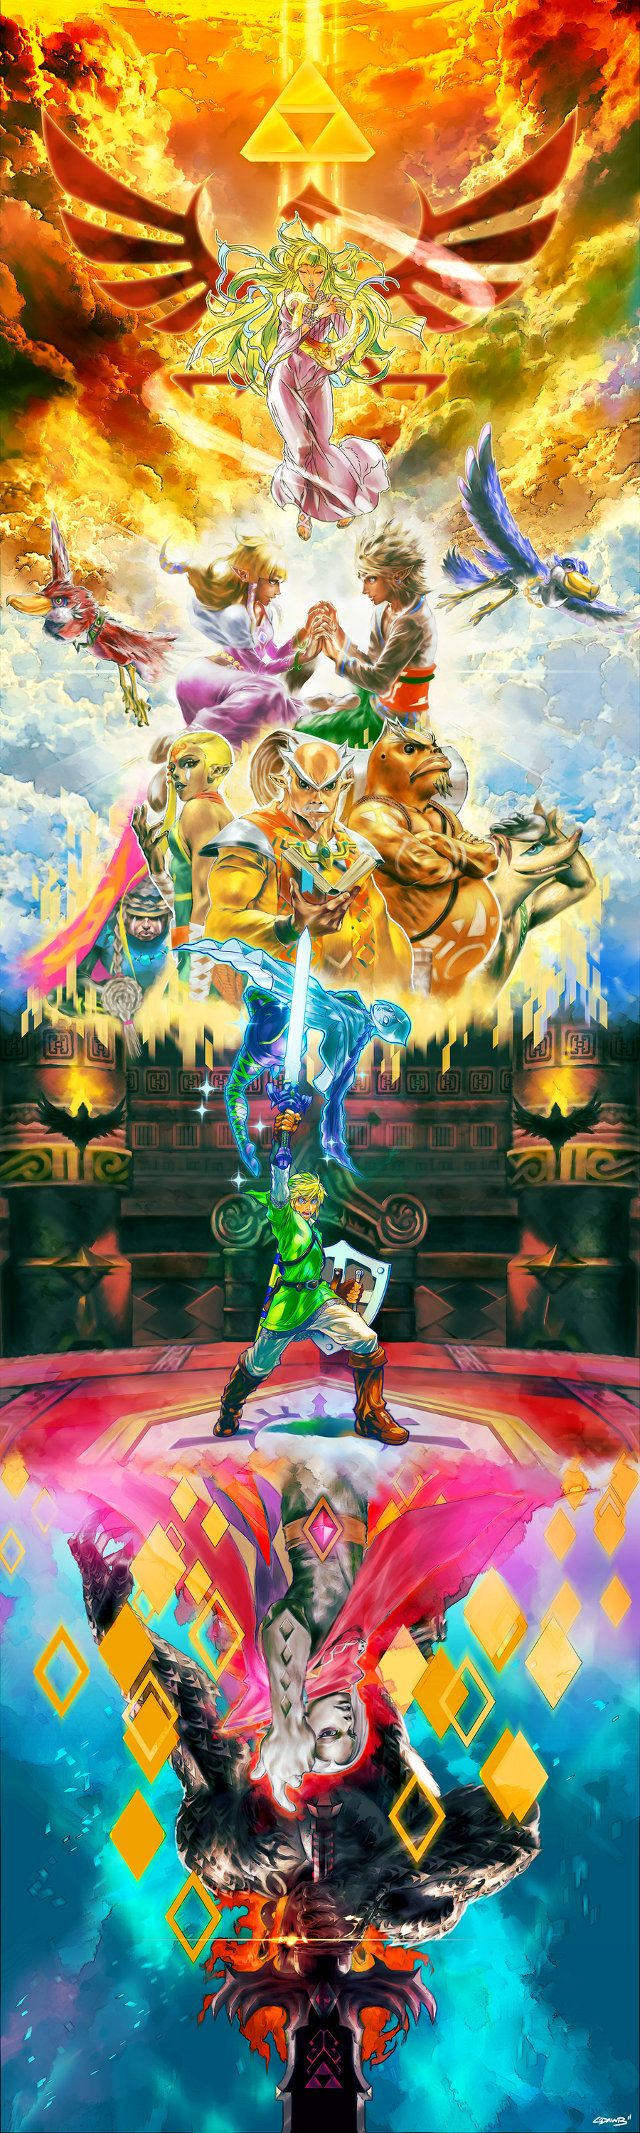 Legend of zelda fan art. This is a seriously amazing undertaking! Truly awesome